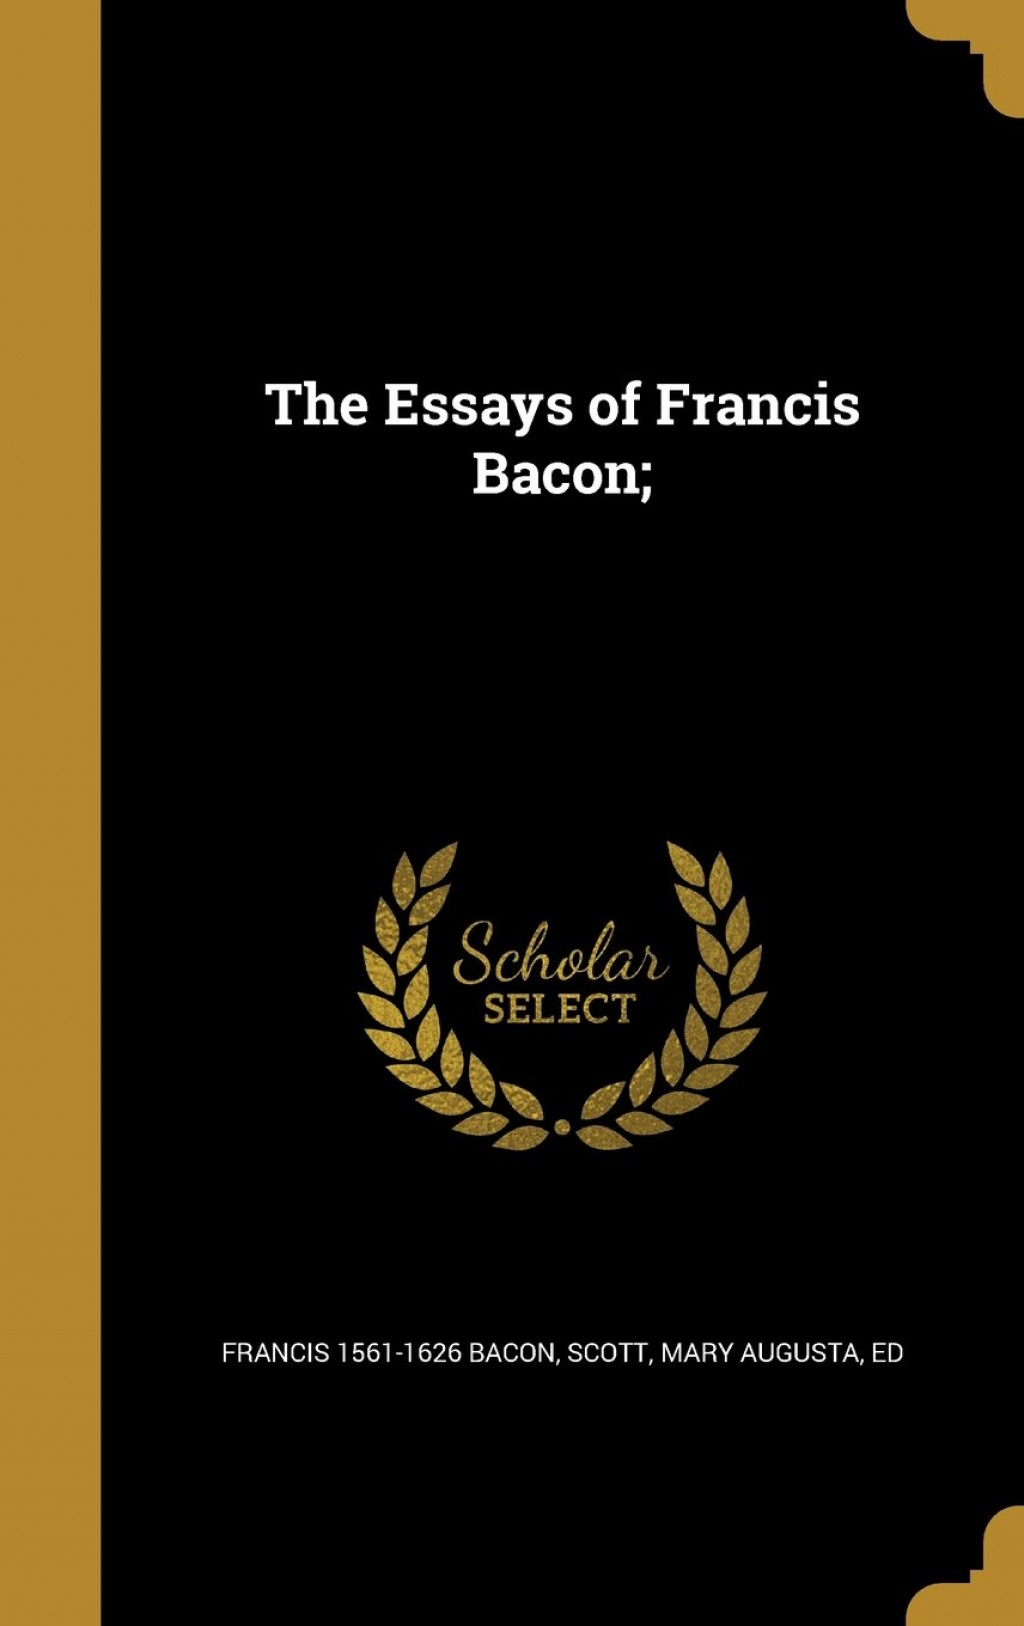 023 Francis Bacon Essays 513h2afvlgl Essay Awesome Analysis Pdf Of Truth Download Critical Appreciation Bacon's Large